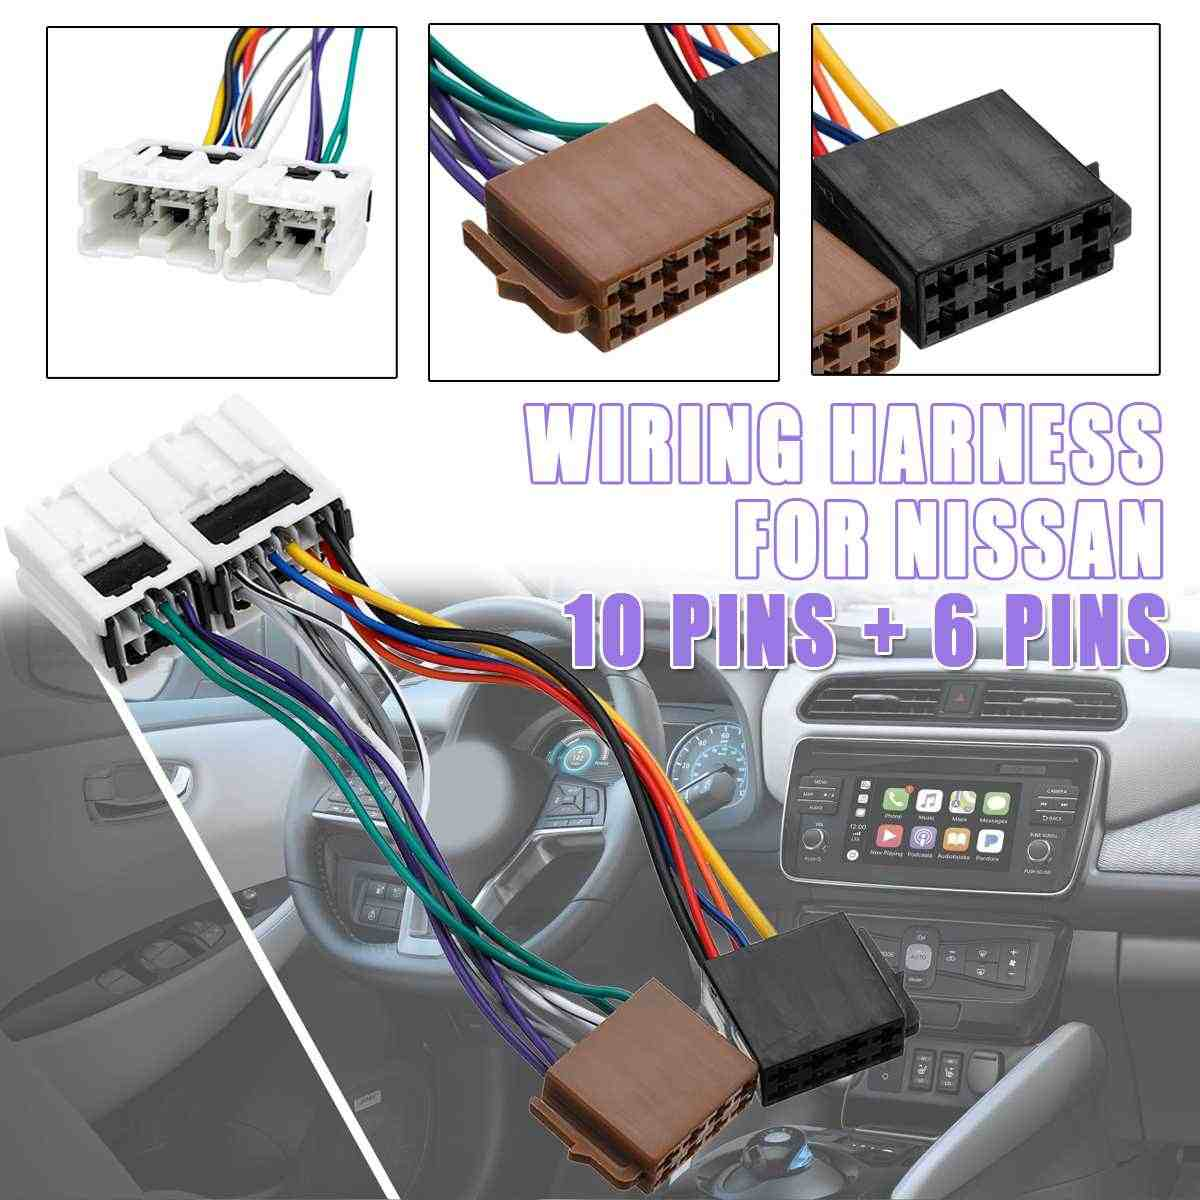 16Pin Car ISO Radio Stereo Wire Cable Harness Adapter Wiring Connector Plug For Nissan X-Trail 300ZX 350Z Maxima Murano Navara